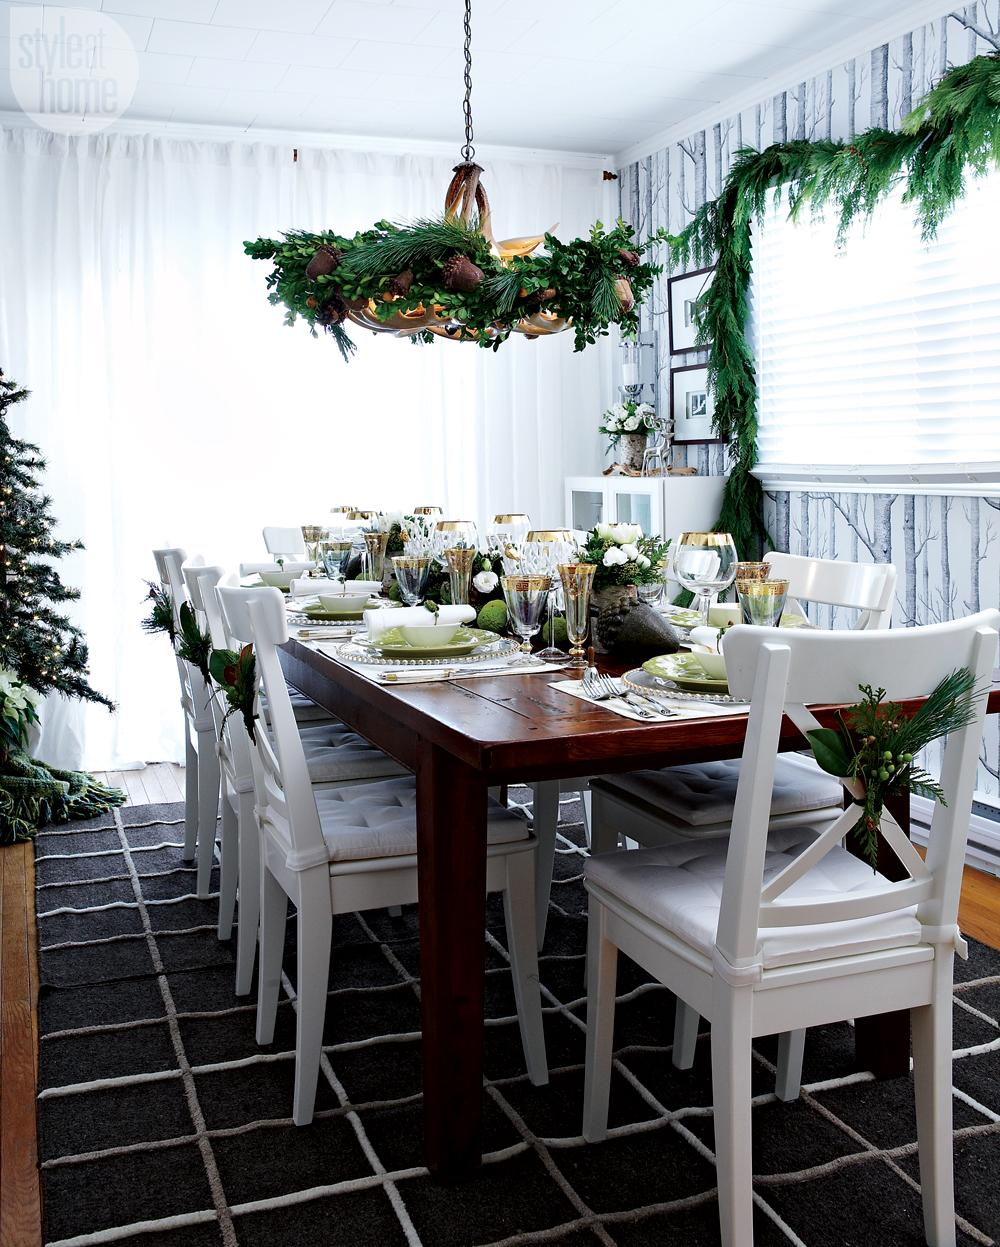 Christmas tree and garland in the dining room. (Photo: Style at Home)